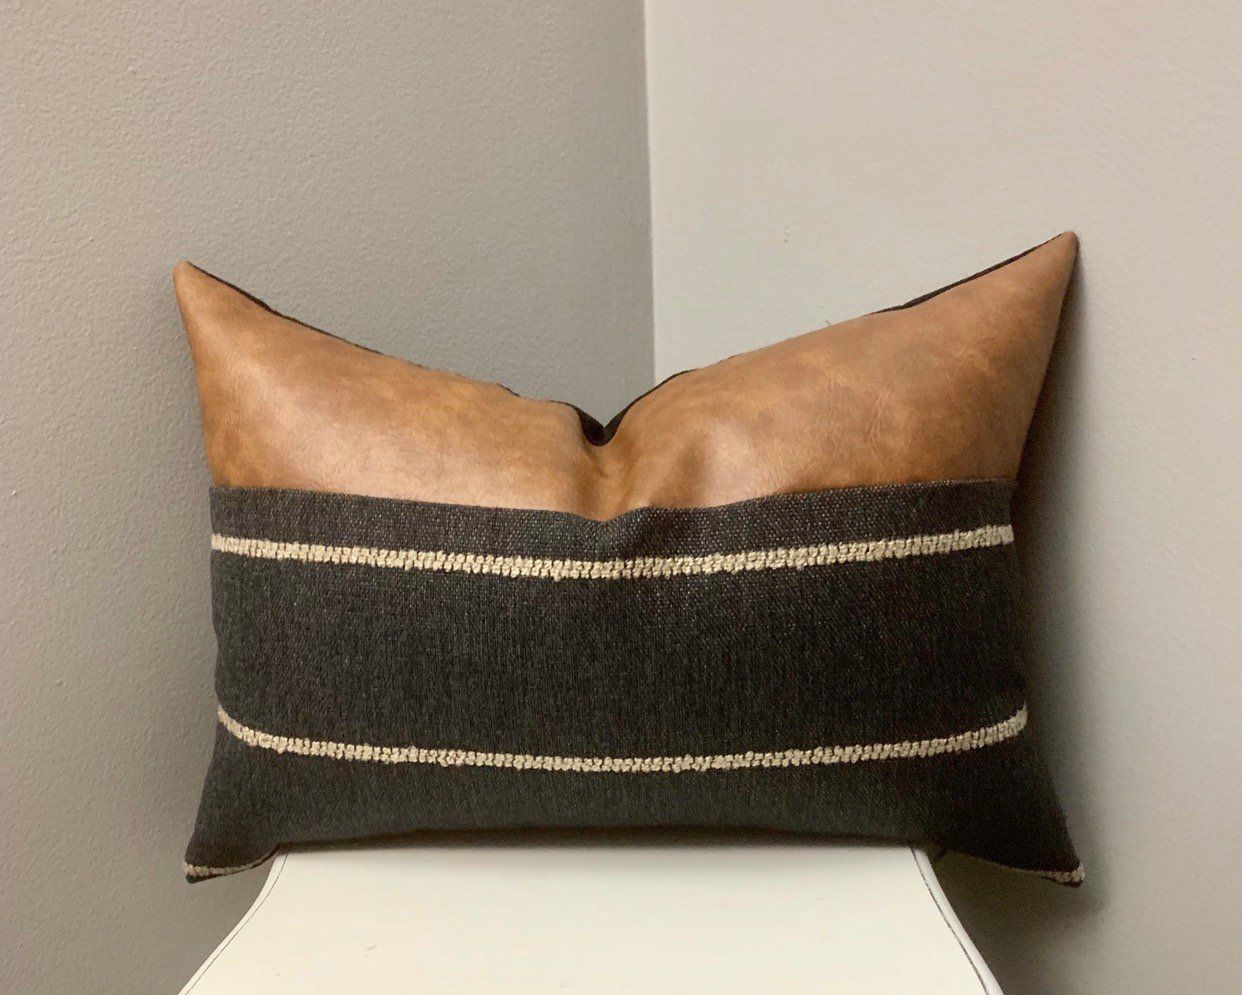 Industrial Collection Gorgeous Dark Denim Blue Taupe Stripes W Cognac Faux Leather Top Panel Pillow Cover 14x20 In 2020 Unique Throw Pillows Aztec Pillows Couch Pillows